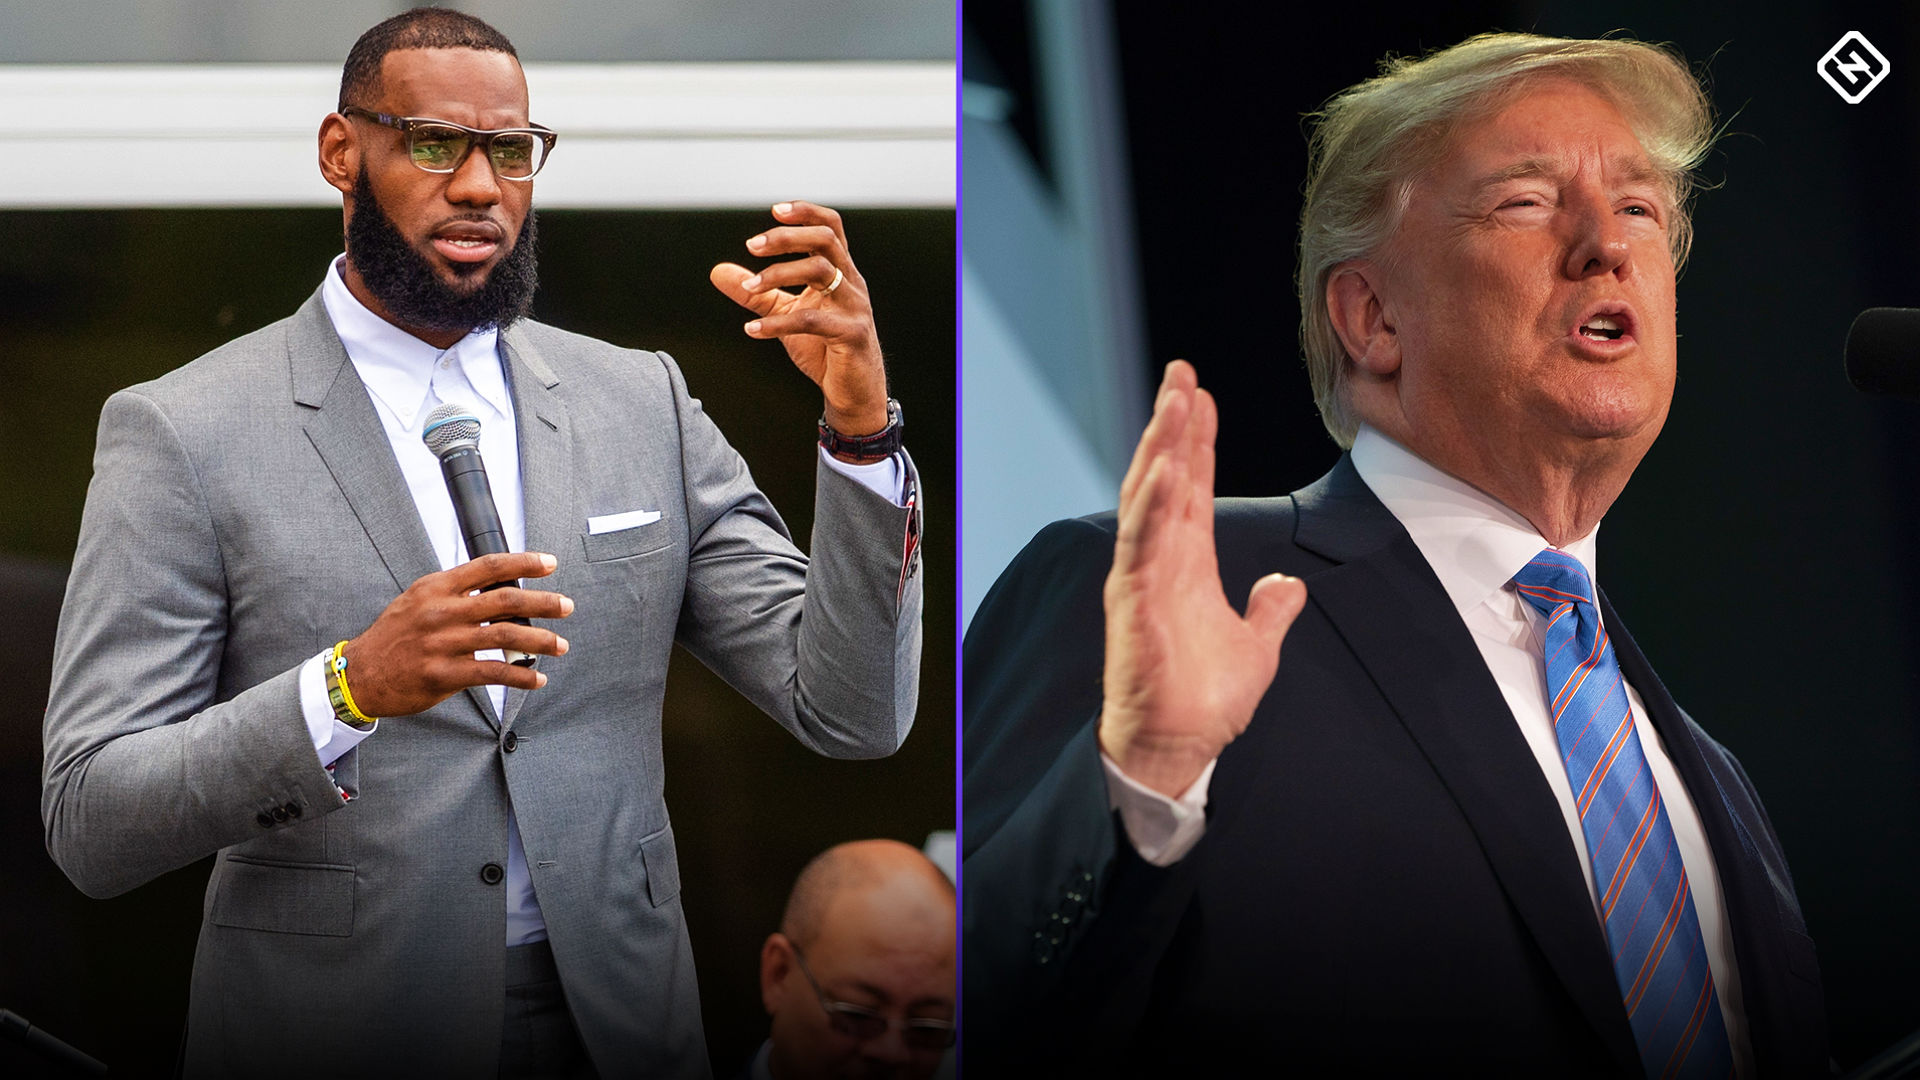 President Trump insults LeBron James' intelligence